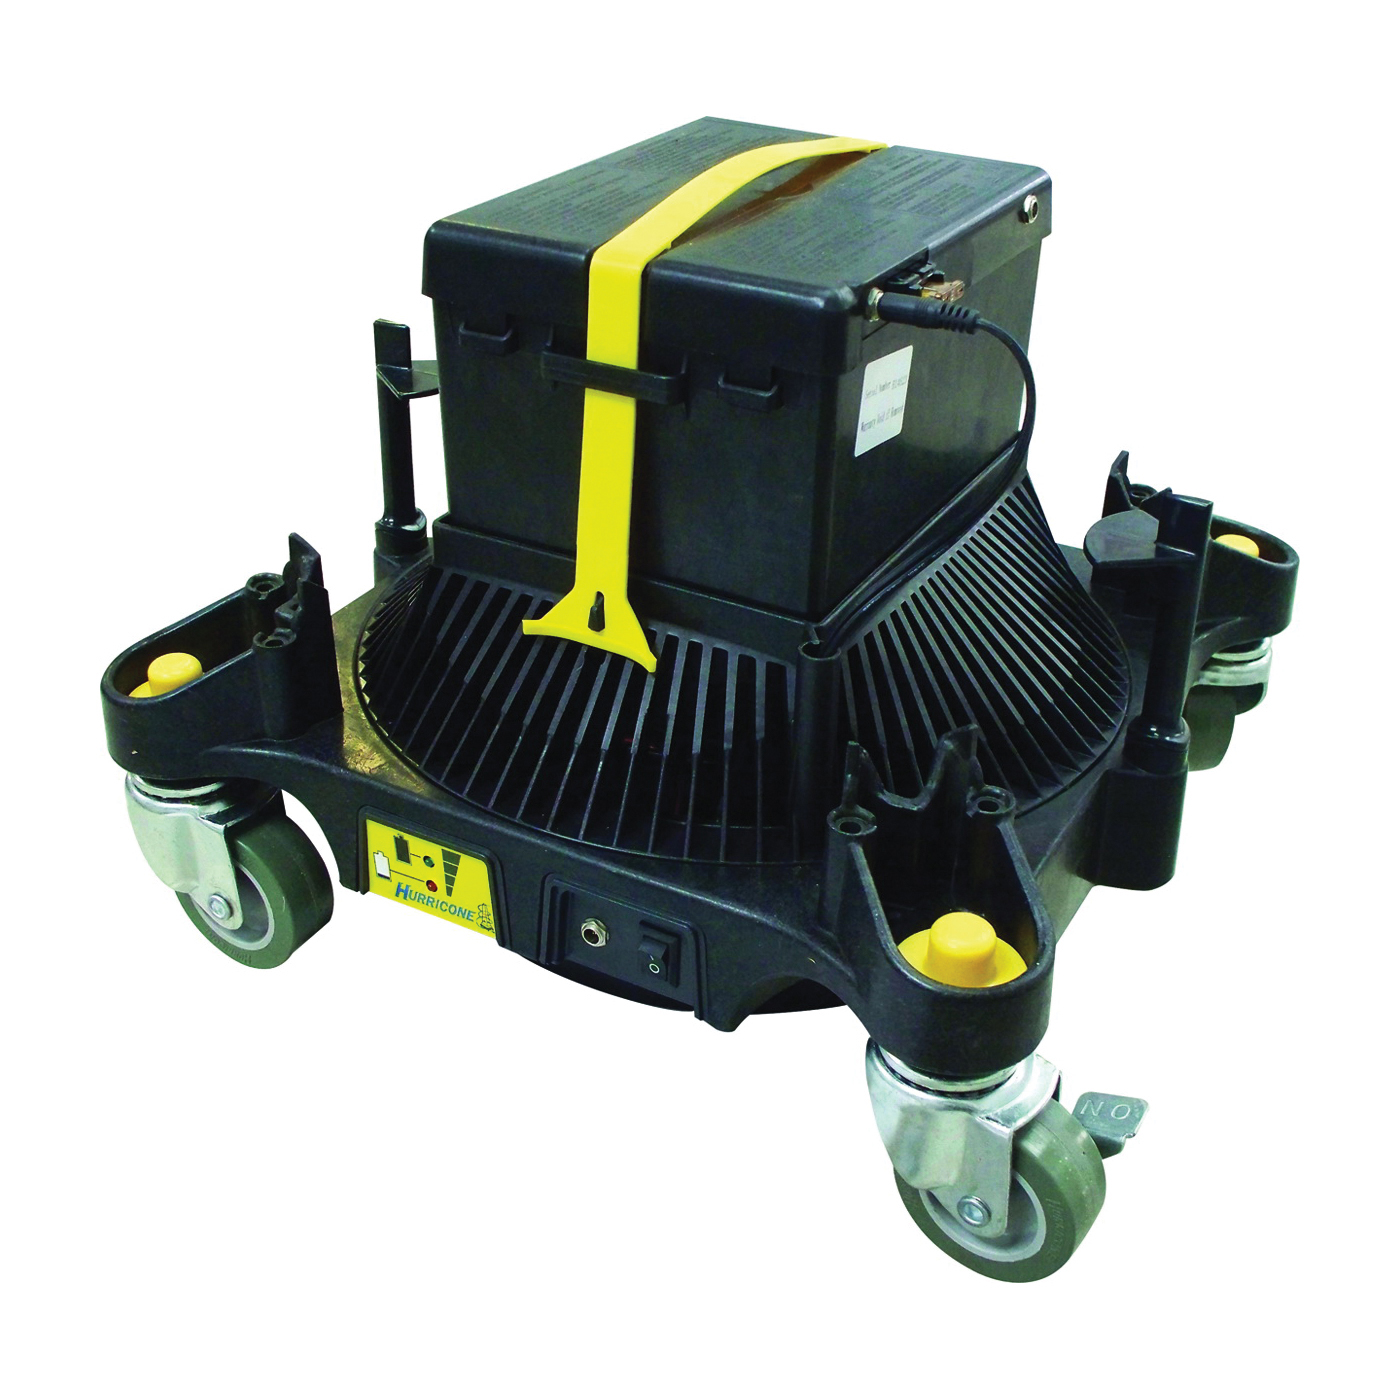 Picture of BEACH SALES & ENGINEERING HUR6000 Floor Dry Dolly, 12 V, 300 cfm Air, Black